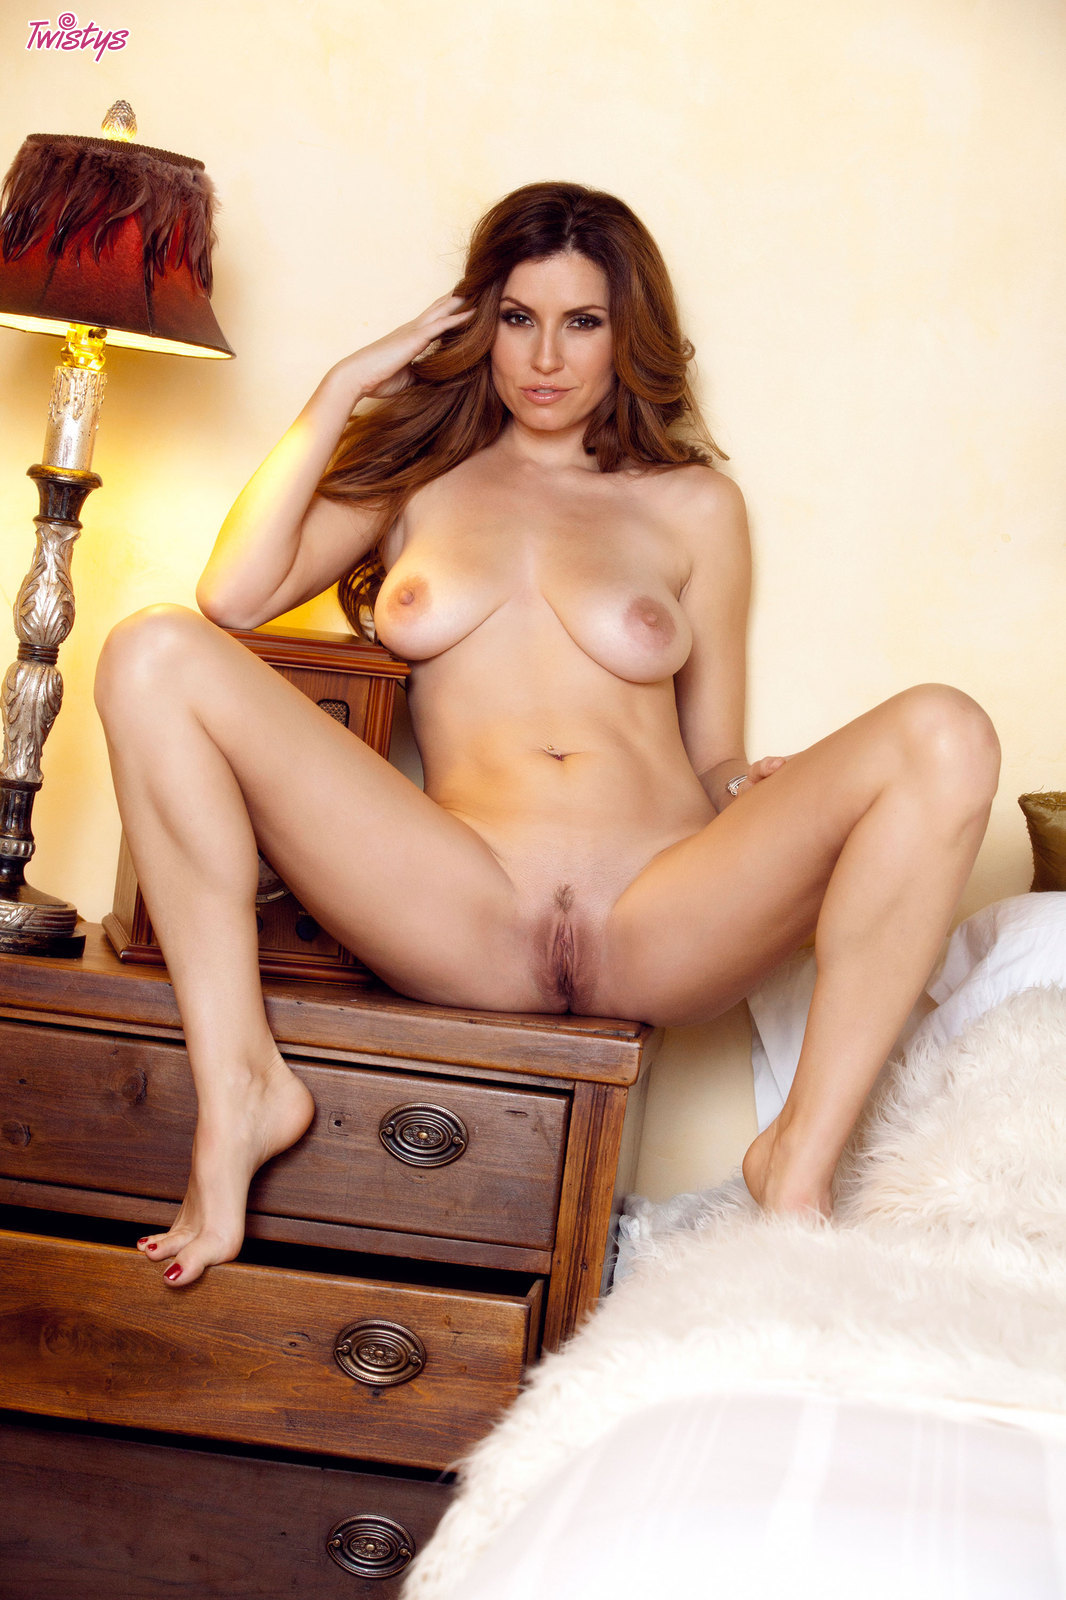 Jamie Lynn nude in 16 photos from First